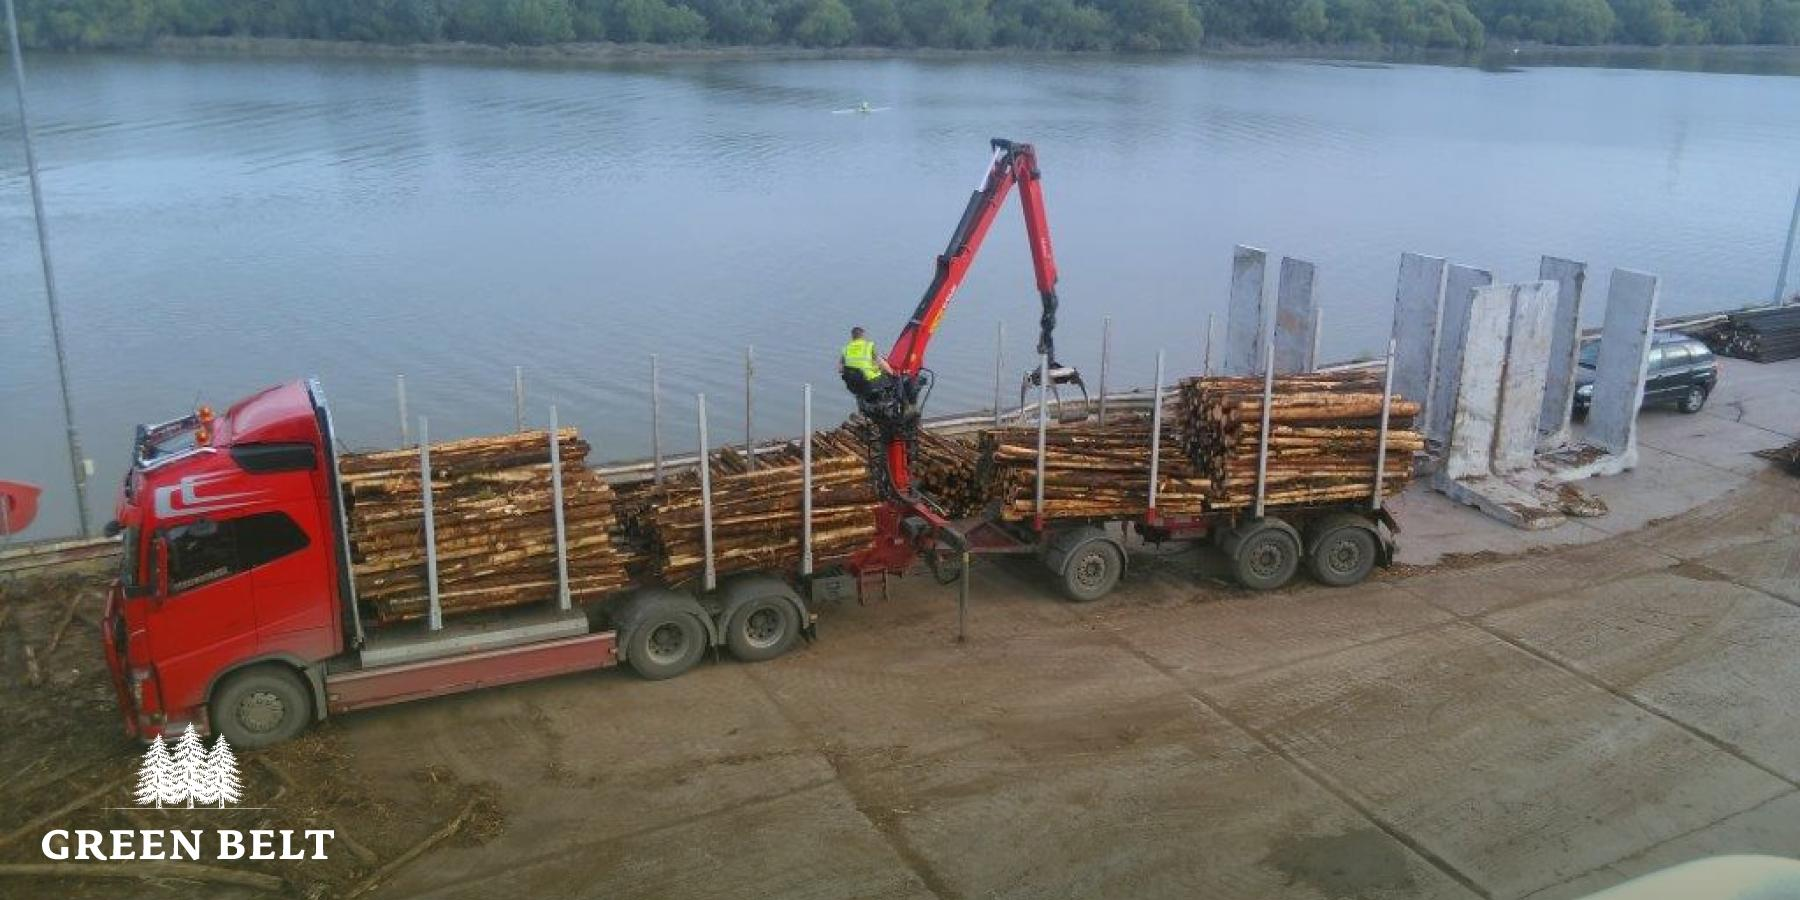 Offloading timber at the port.